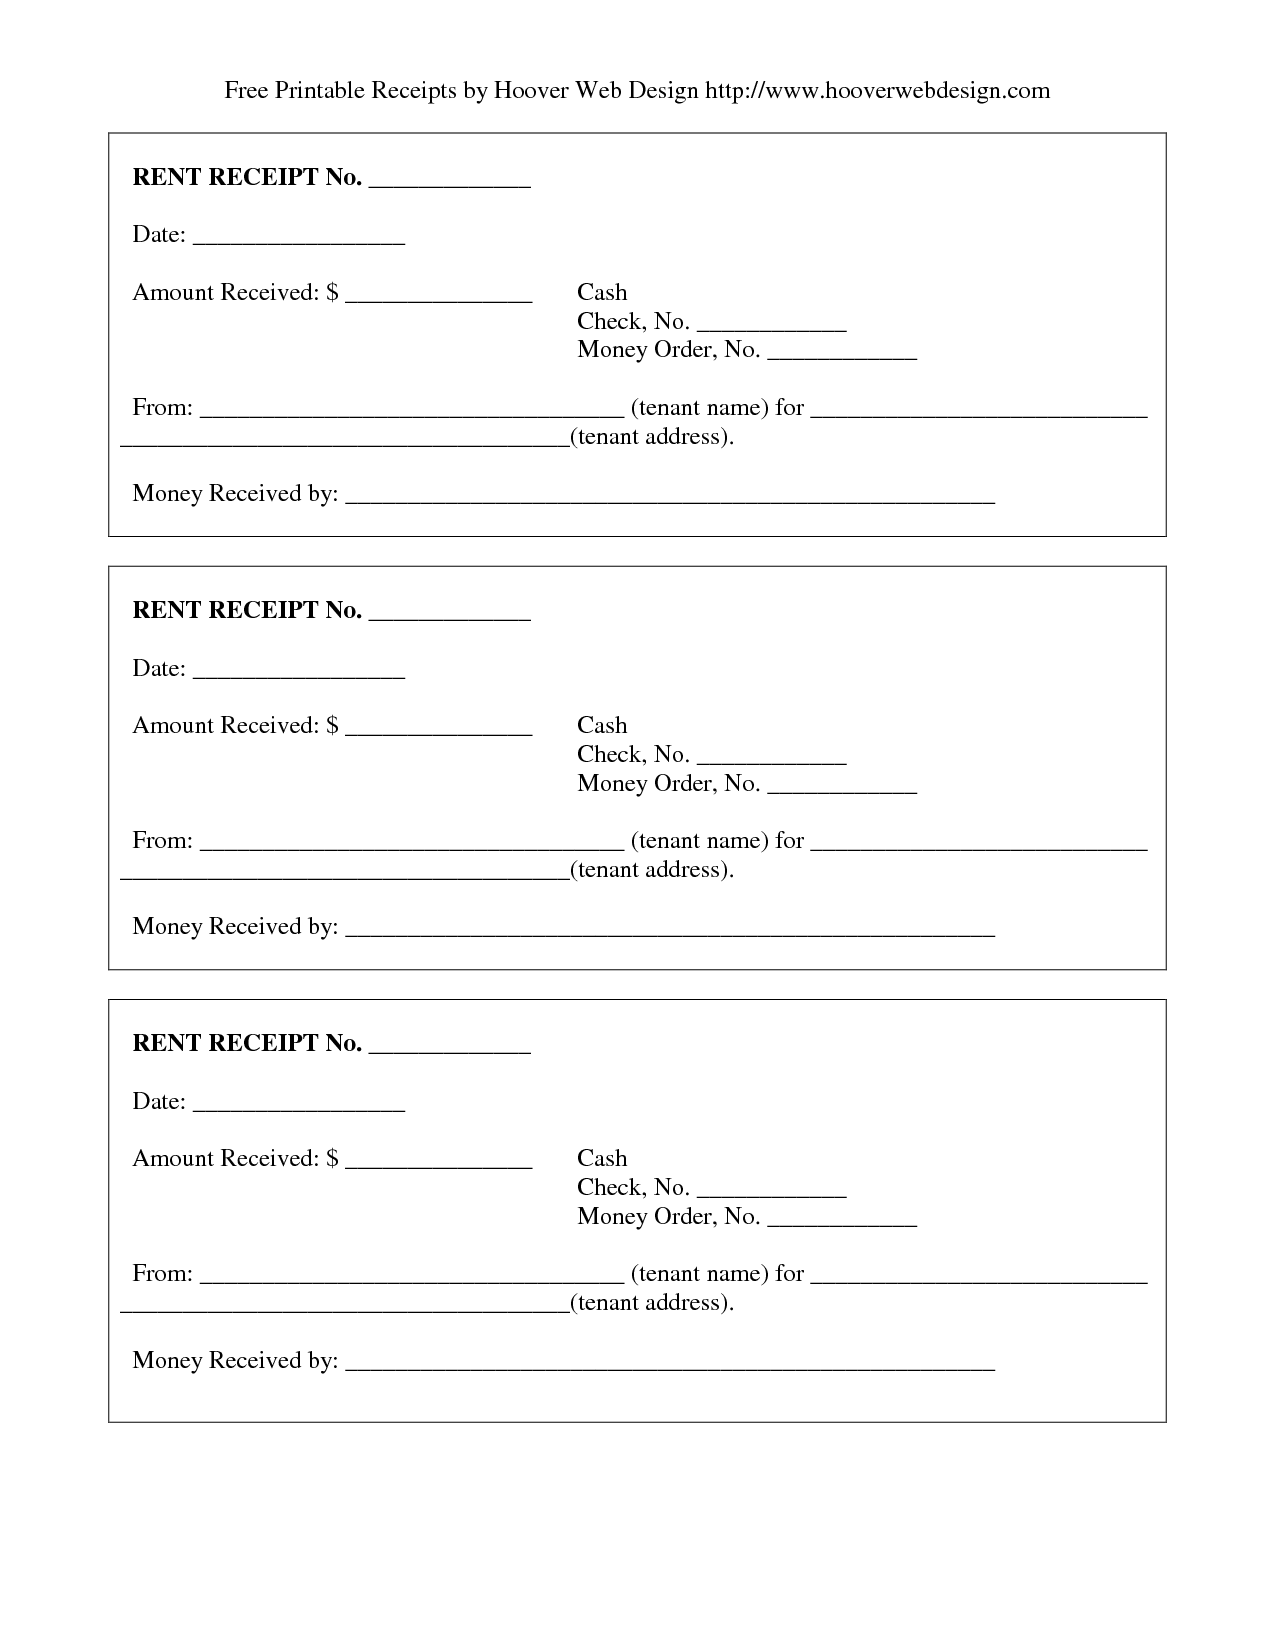 Free Rent Receipt - Free Printable Documents